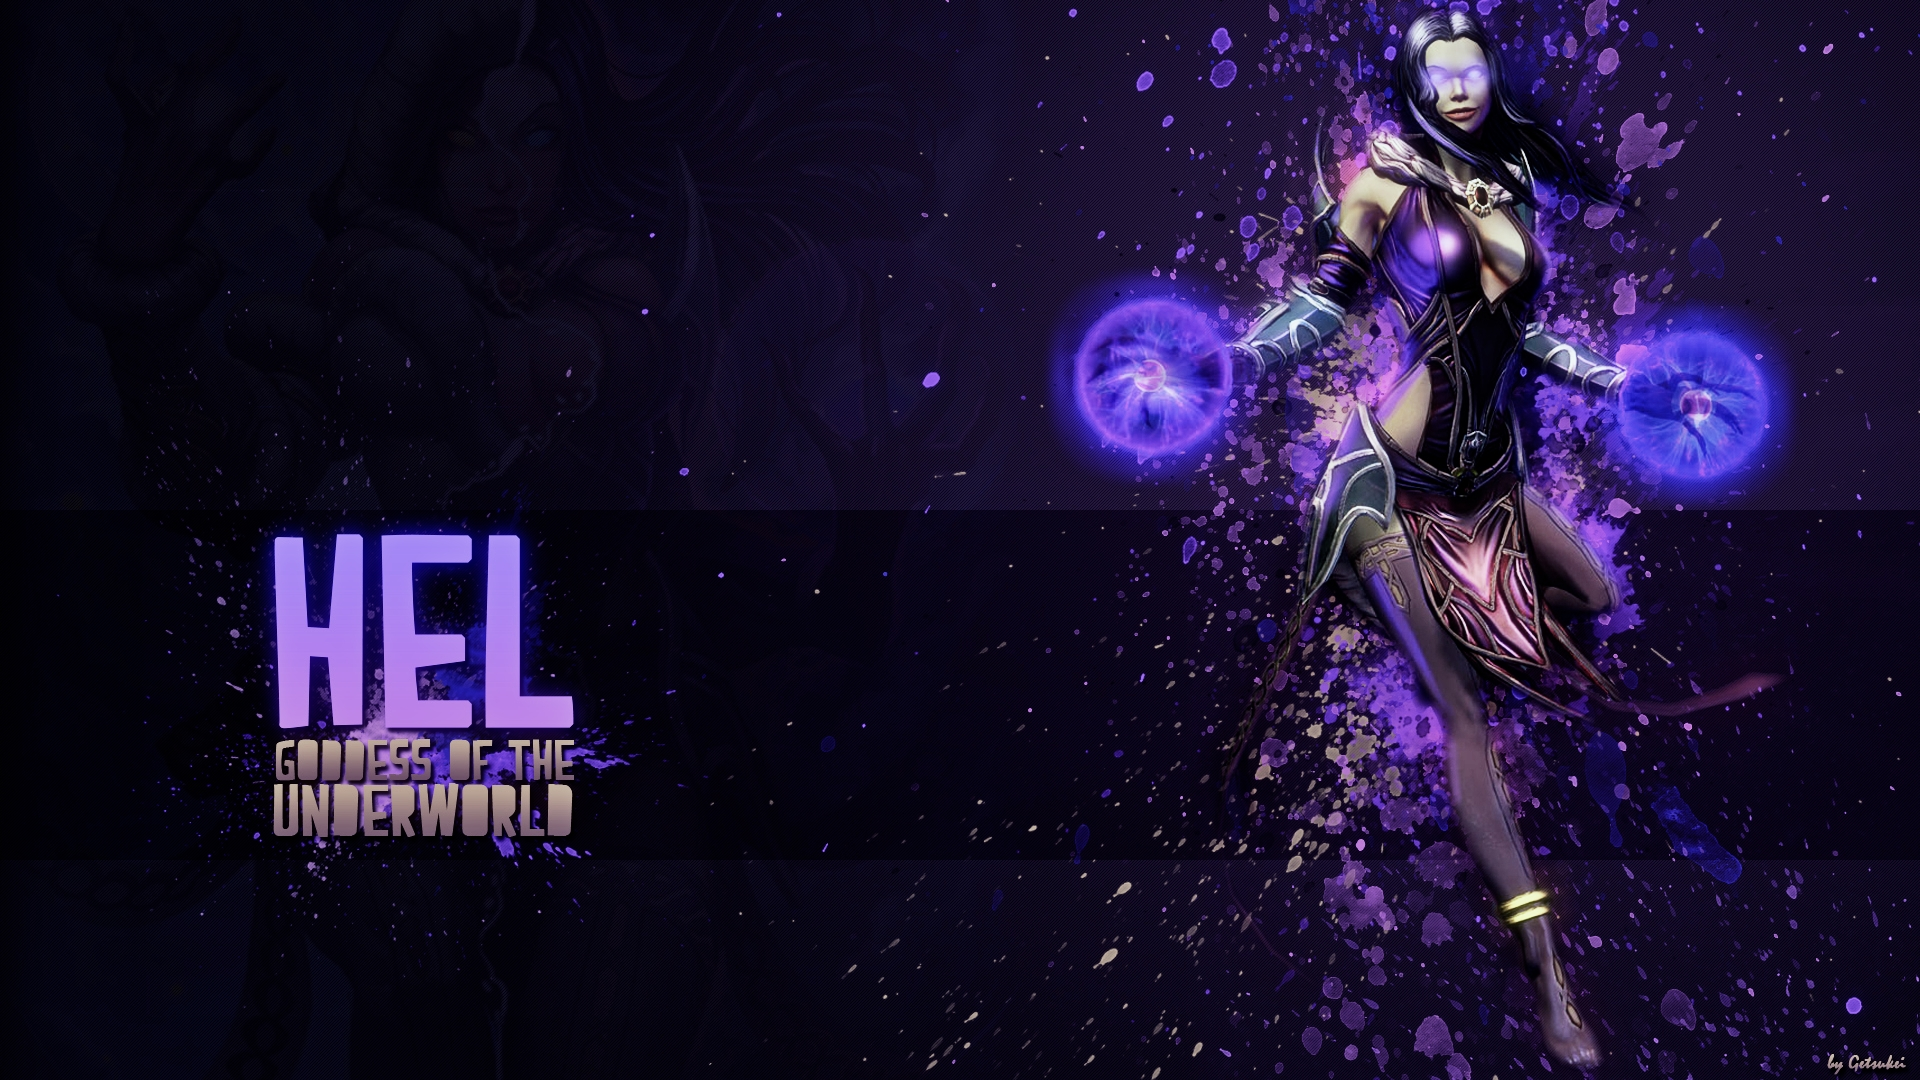 Hel Goddess of the Underworld   Wallpaper HD by Getsukeii on 1920x1080